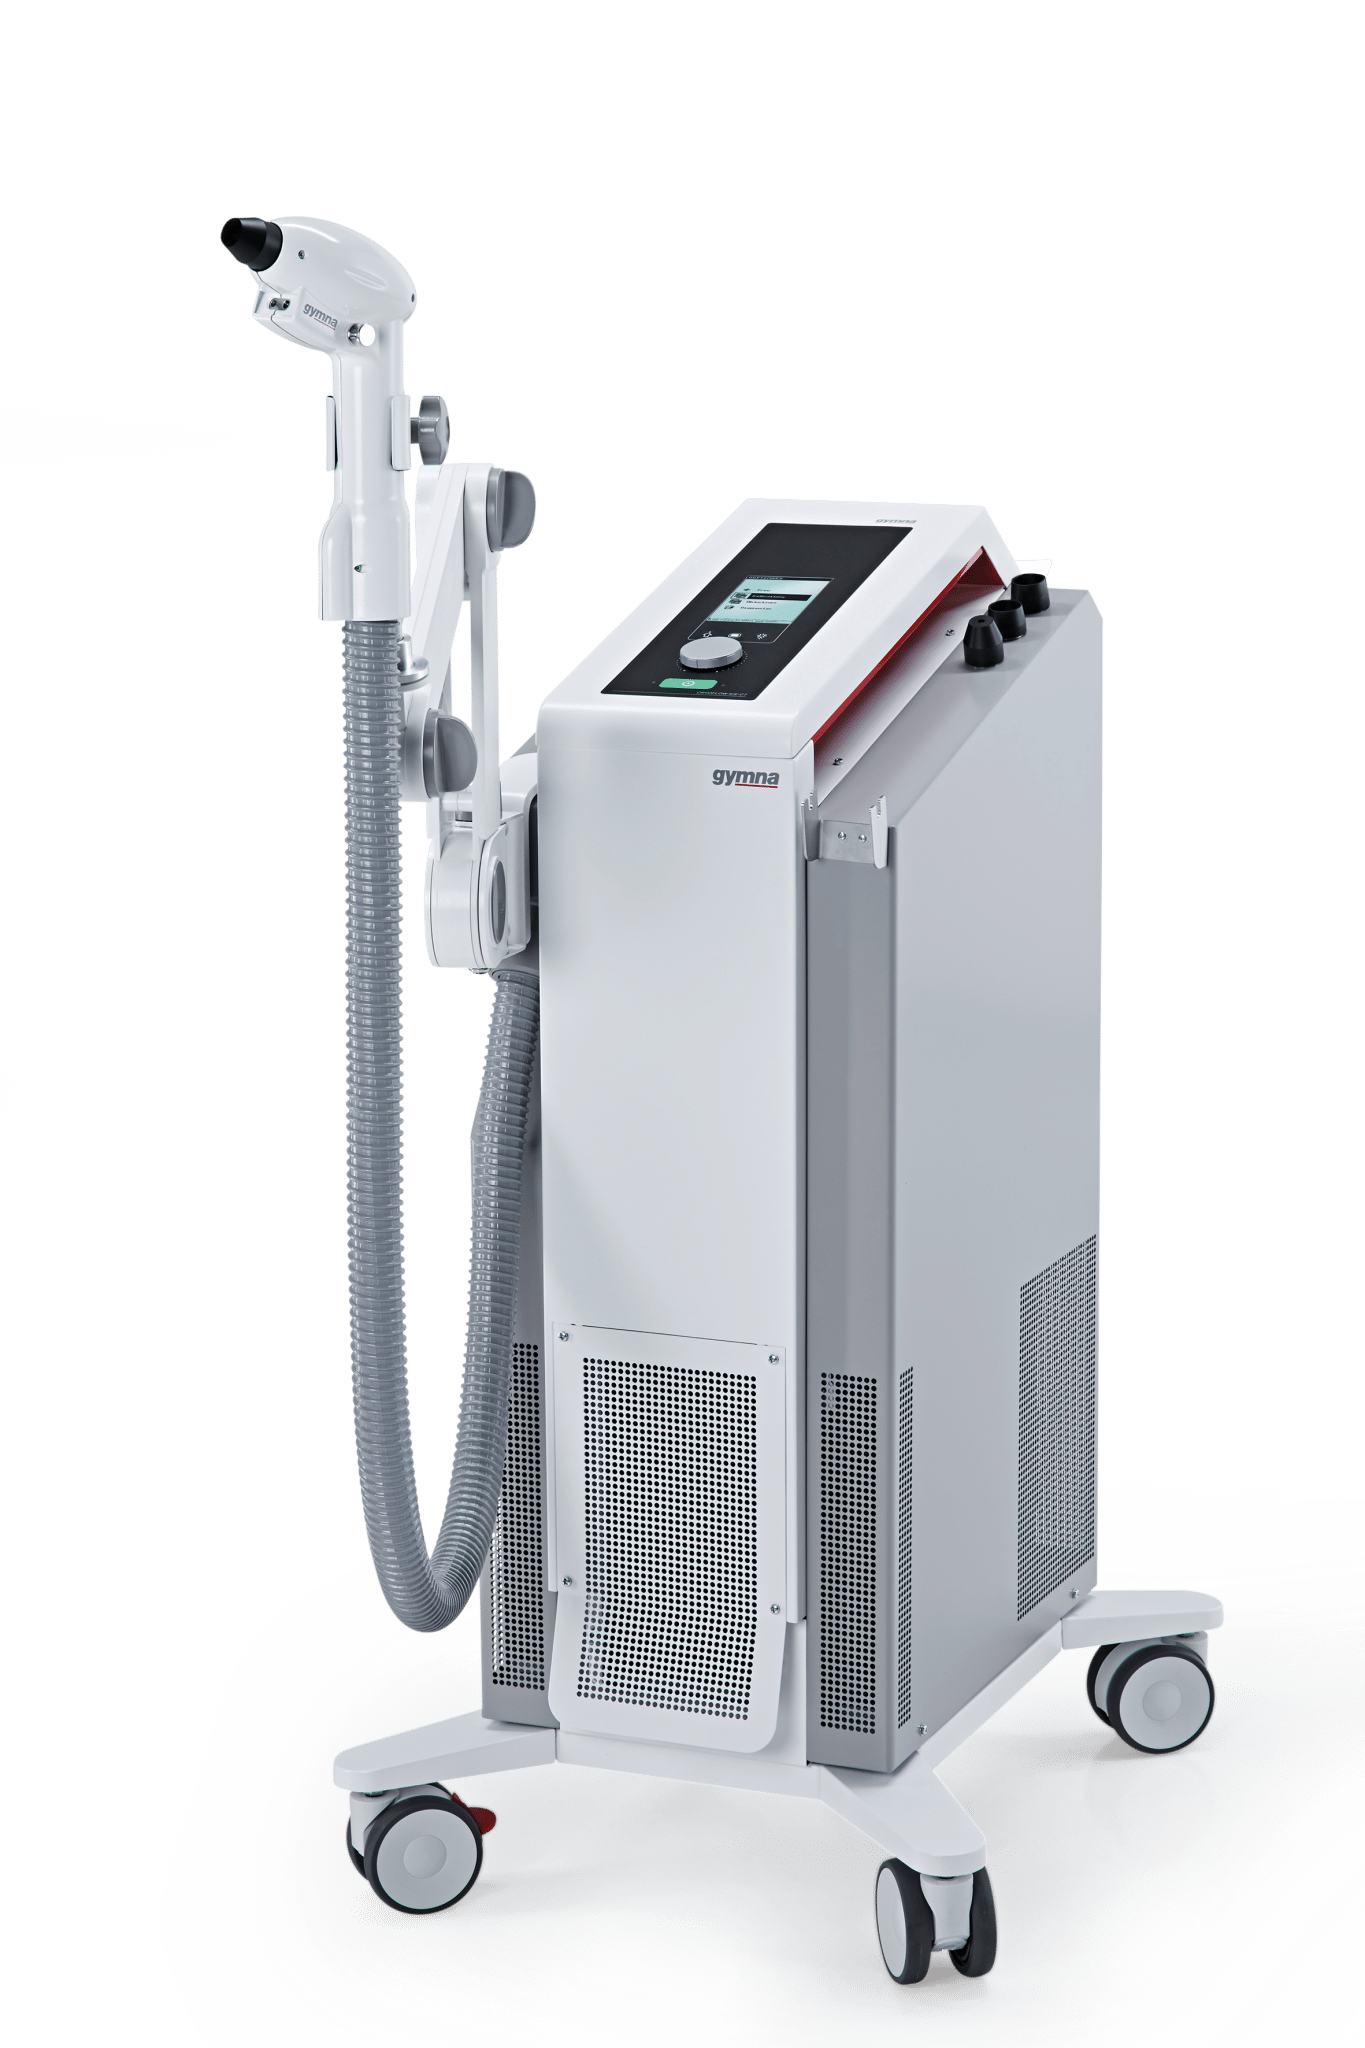 Cryoflow ICE-CT